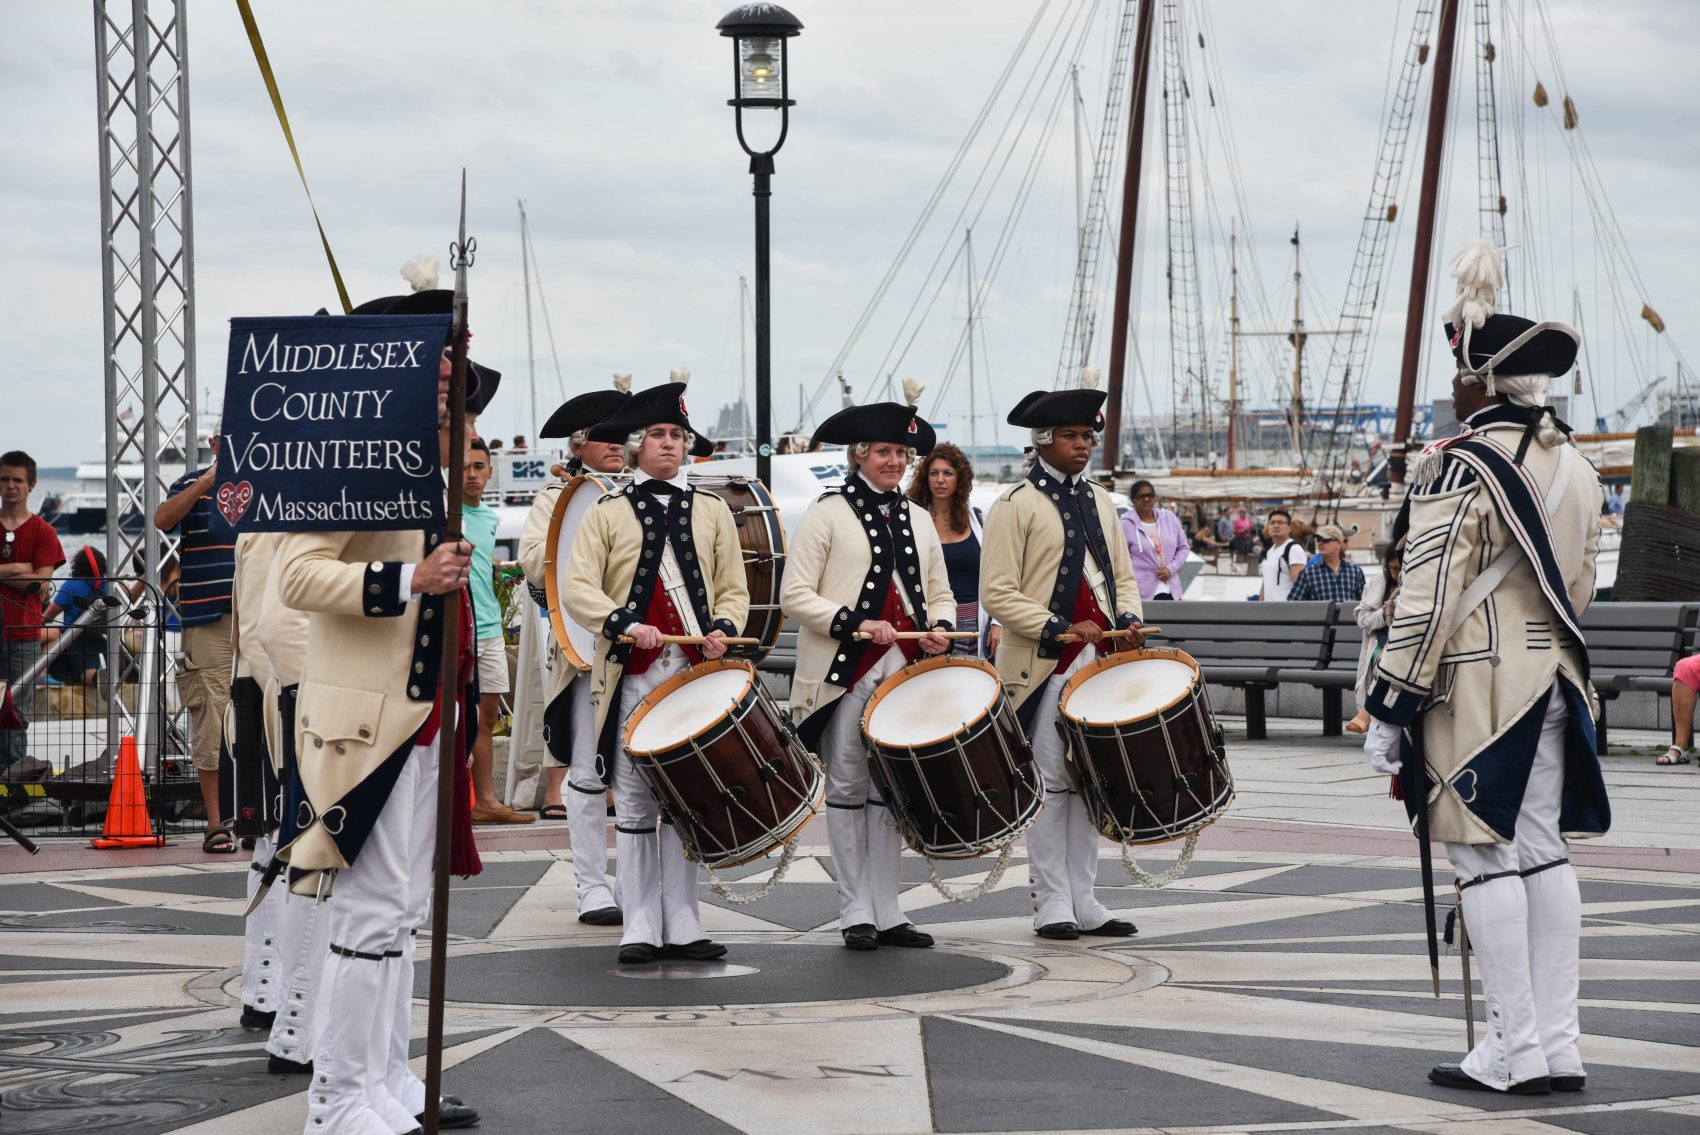 Middlesex County Volunteers at last year's Harborfest. (Courtesy Harborfest)